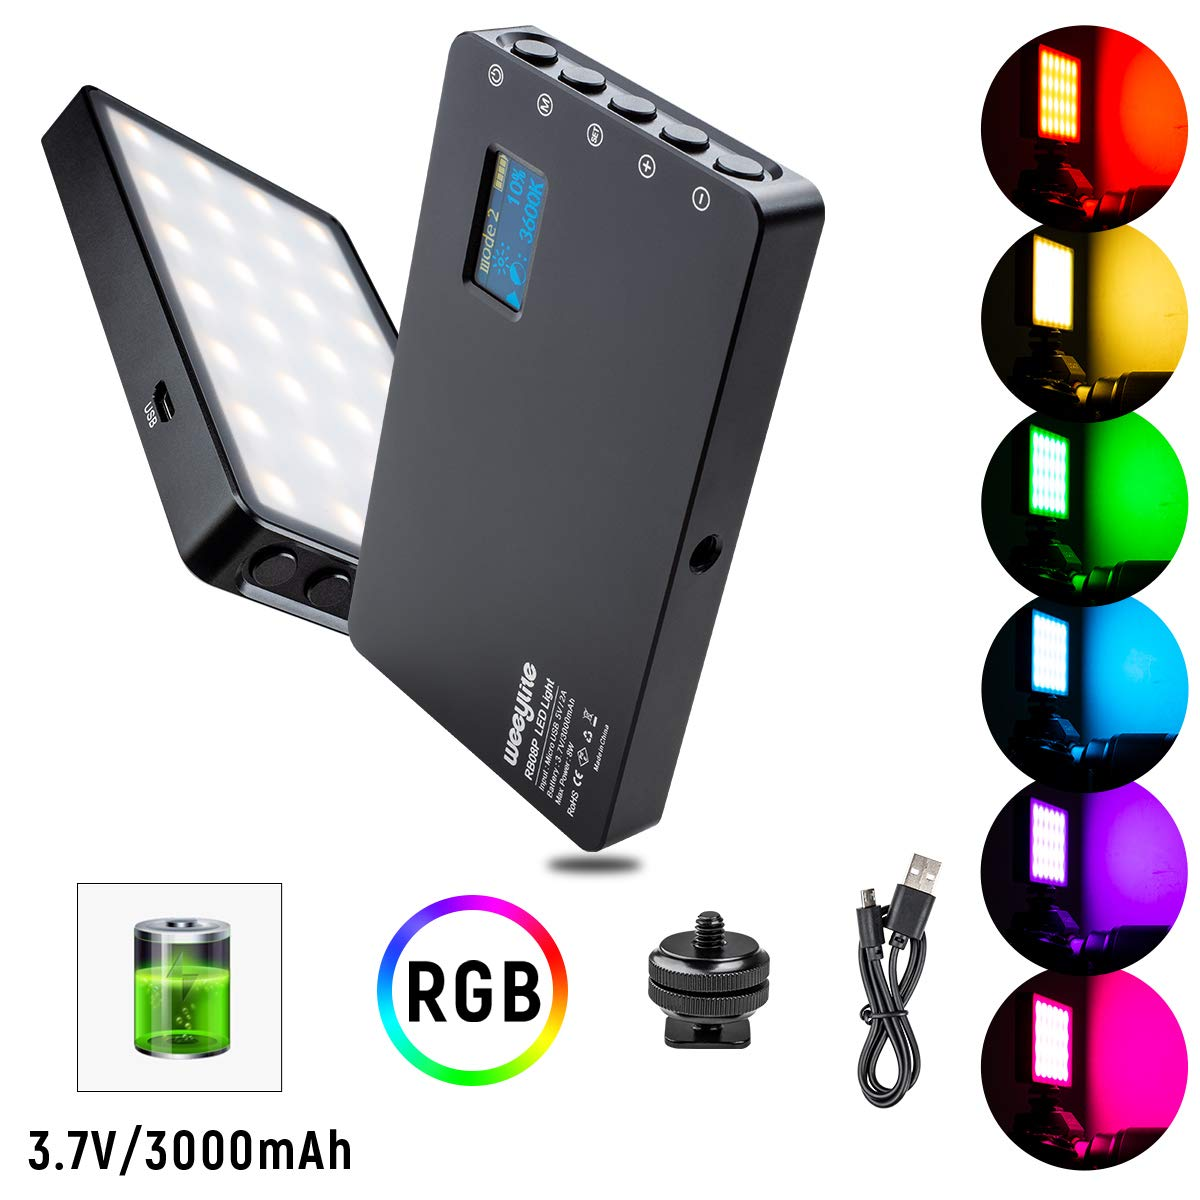 FULAIM RGB Photography LED Video Light w//12 Levels Adjustable Brightness 8 Color Temperature Modes 3000K-5750K Remote Control and Bulit-in Battery for Outdoor//Indoor Photo Shooting